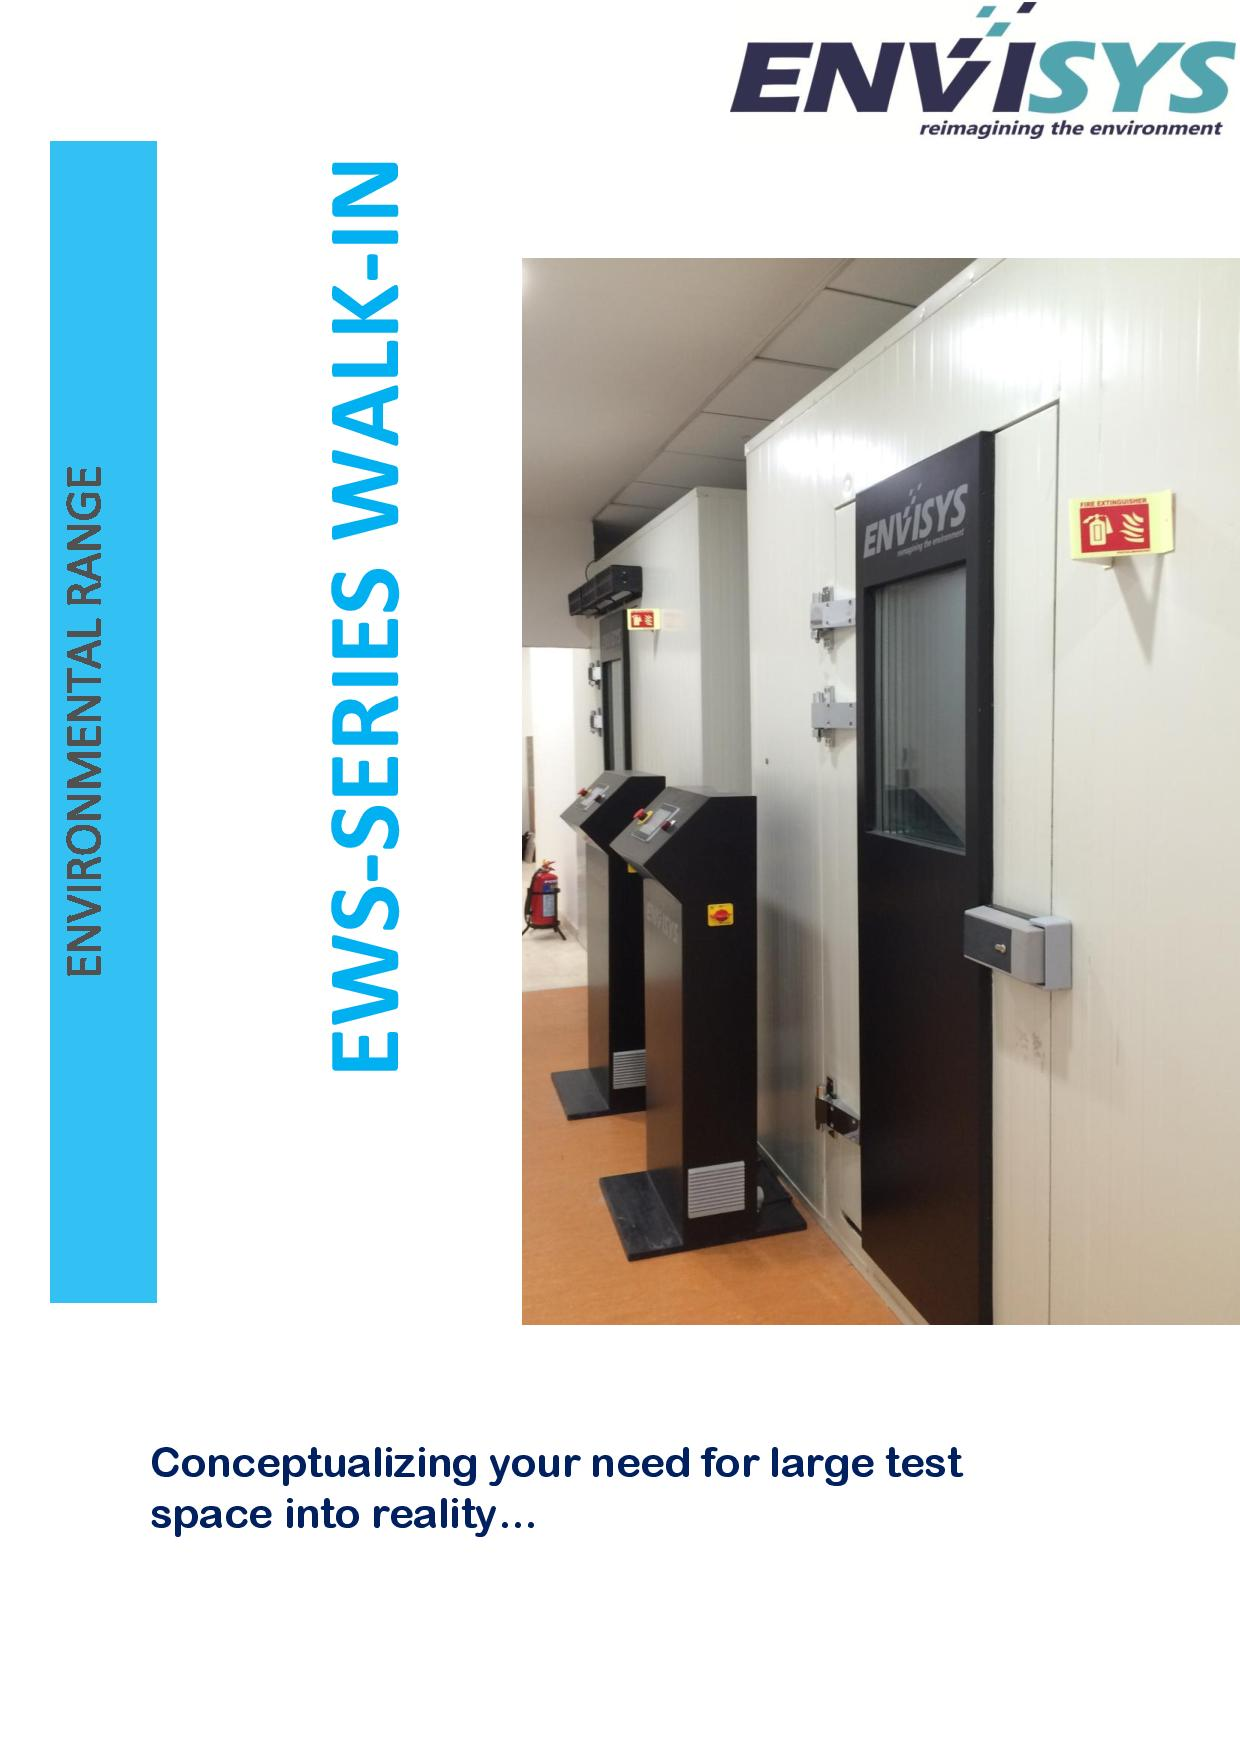 EWS-Series Walk-in Environmental Chambers from Envisys designed to meet the testing of large sized test specimens as per customer requirements.